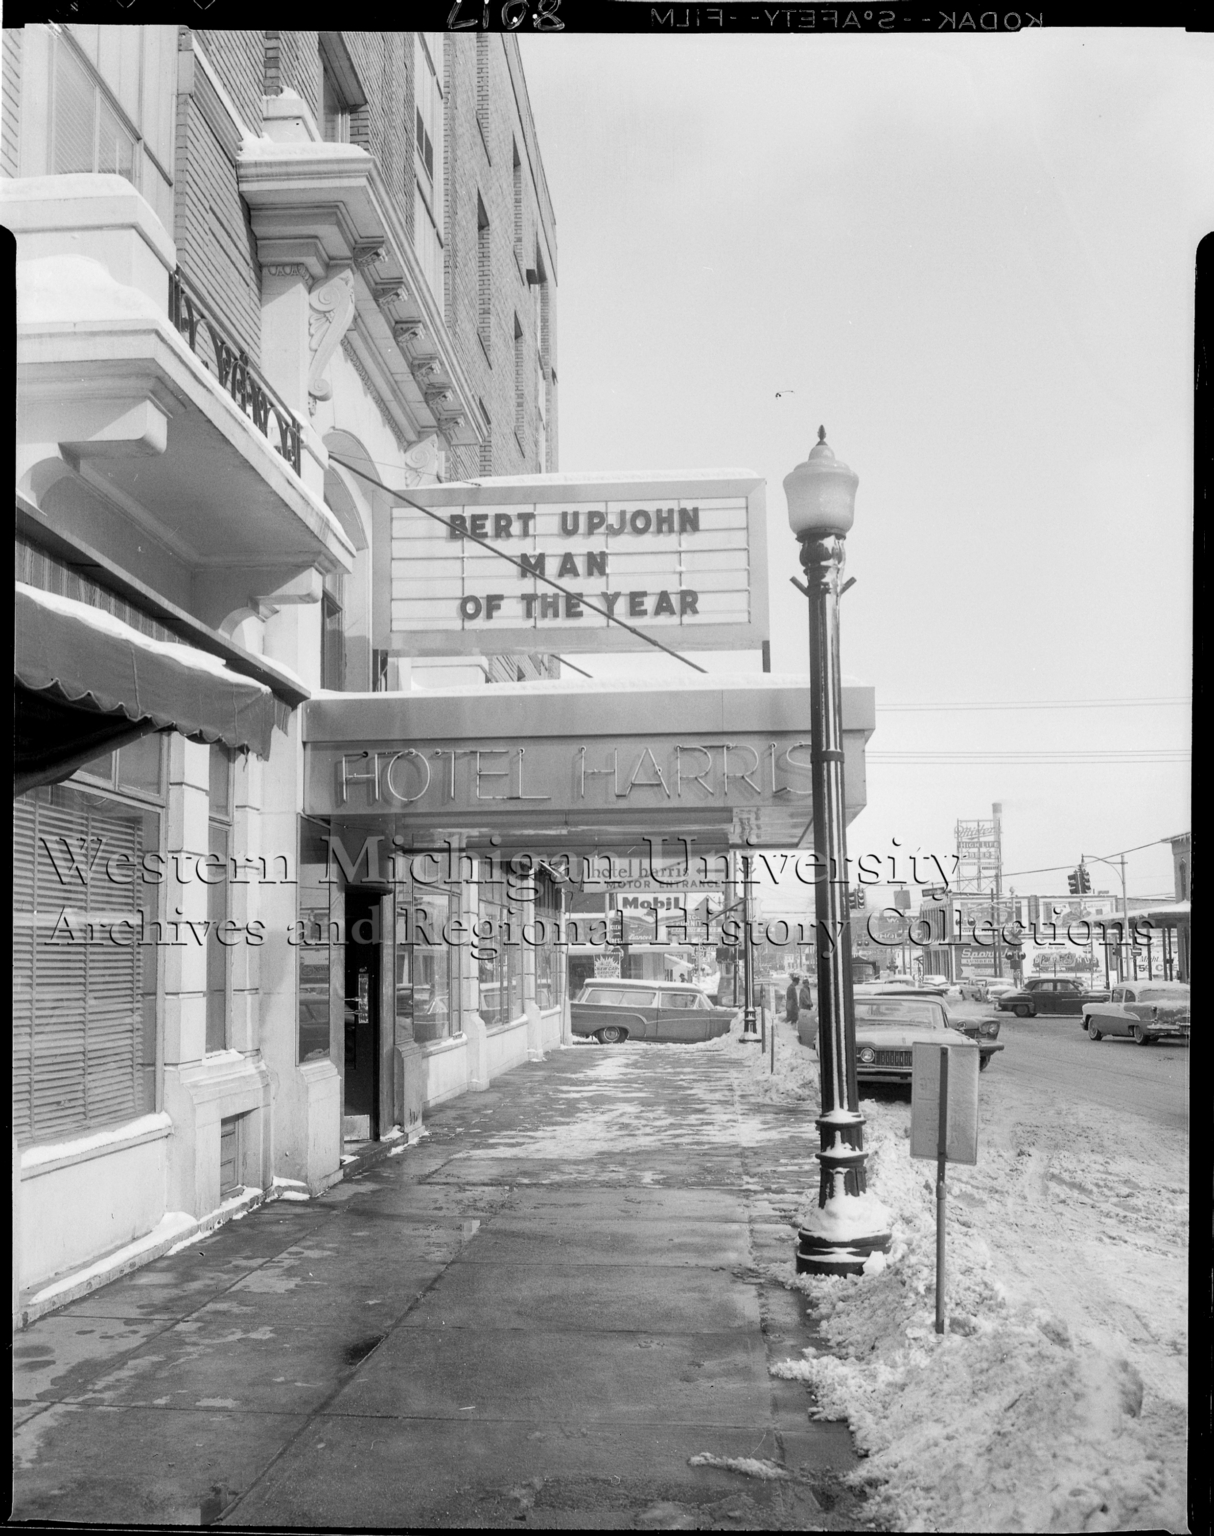 Marquee sign at the Hotel Harris featuring Bert Upjohn Man of the Year